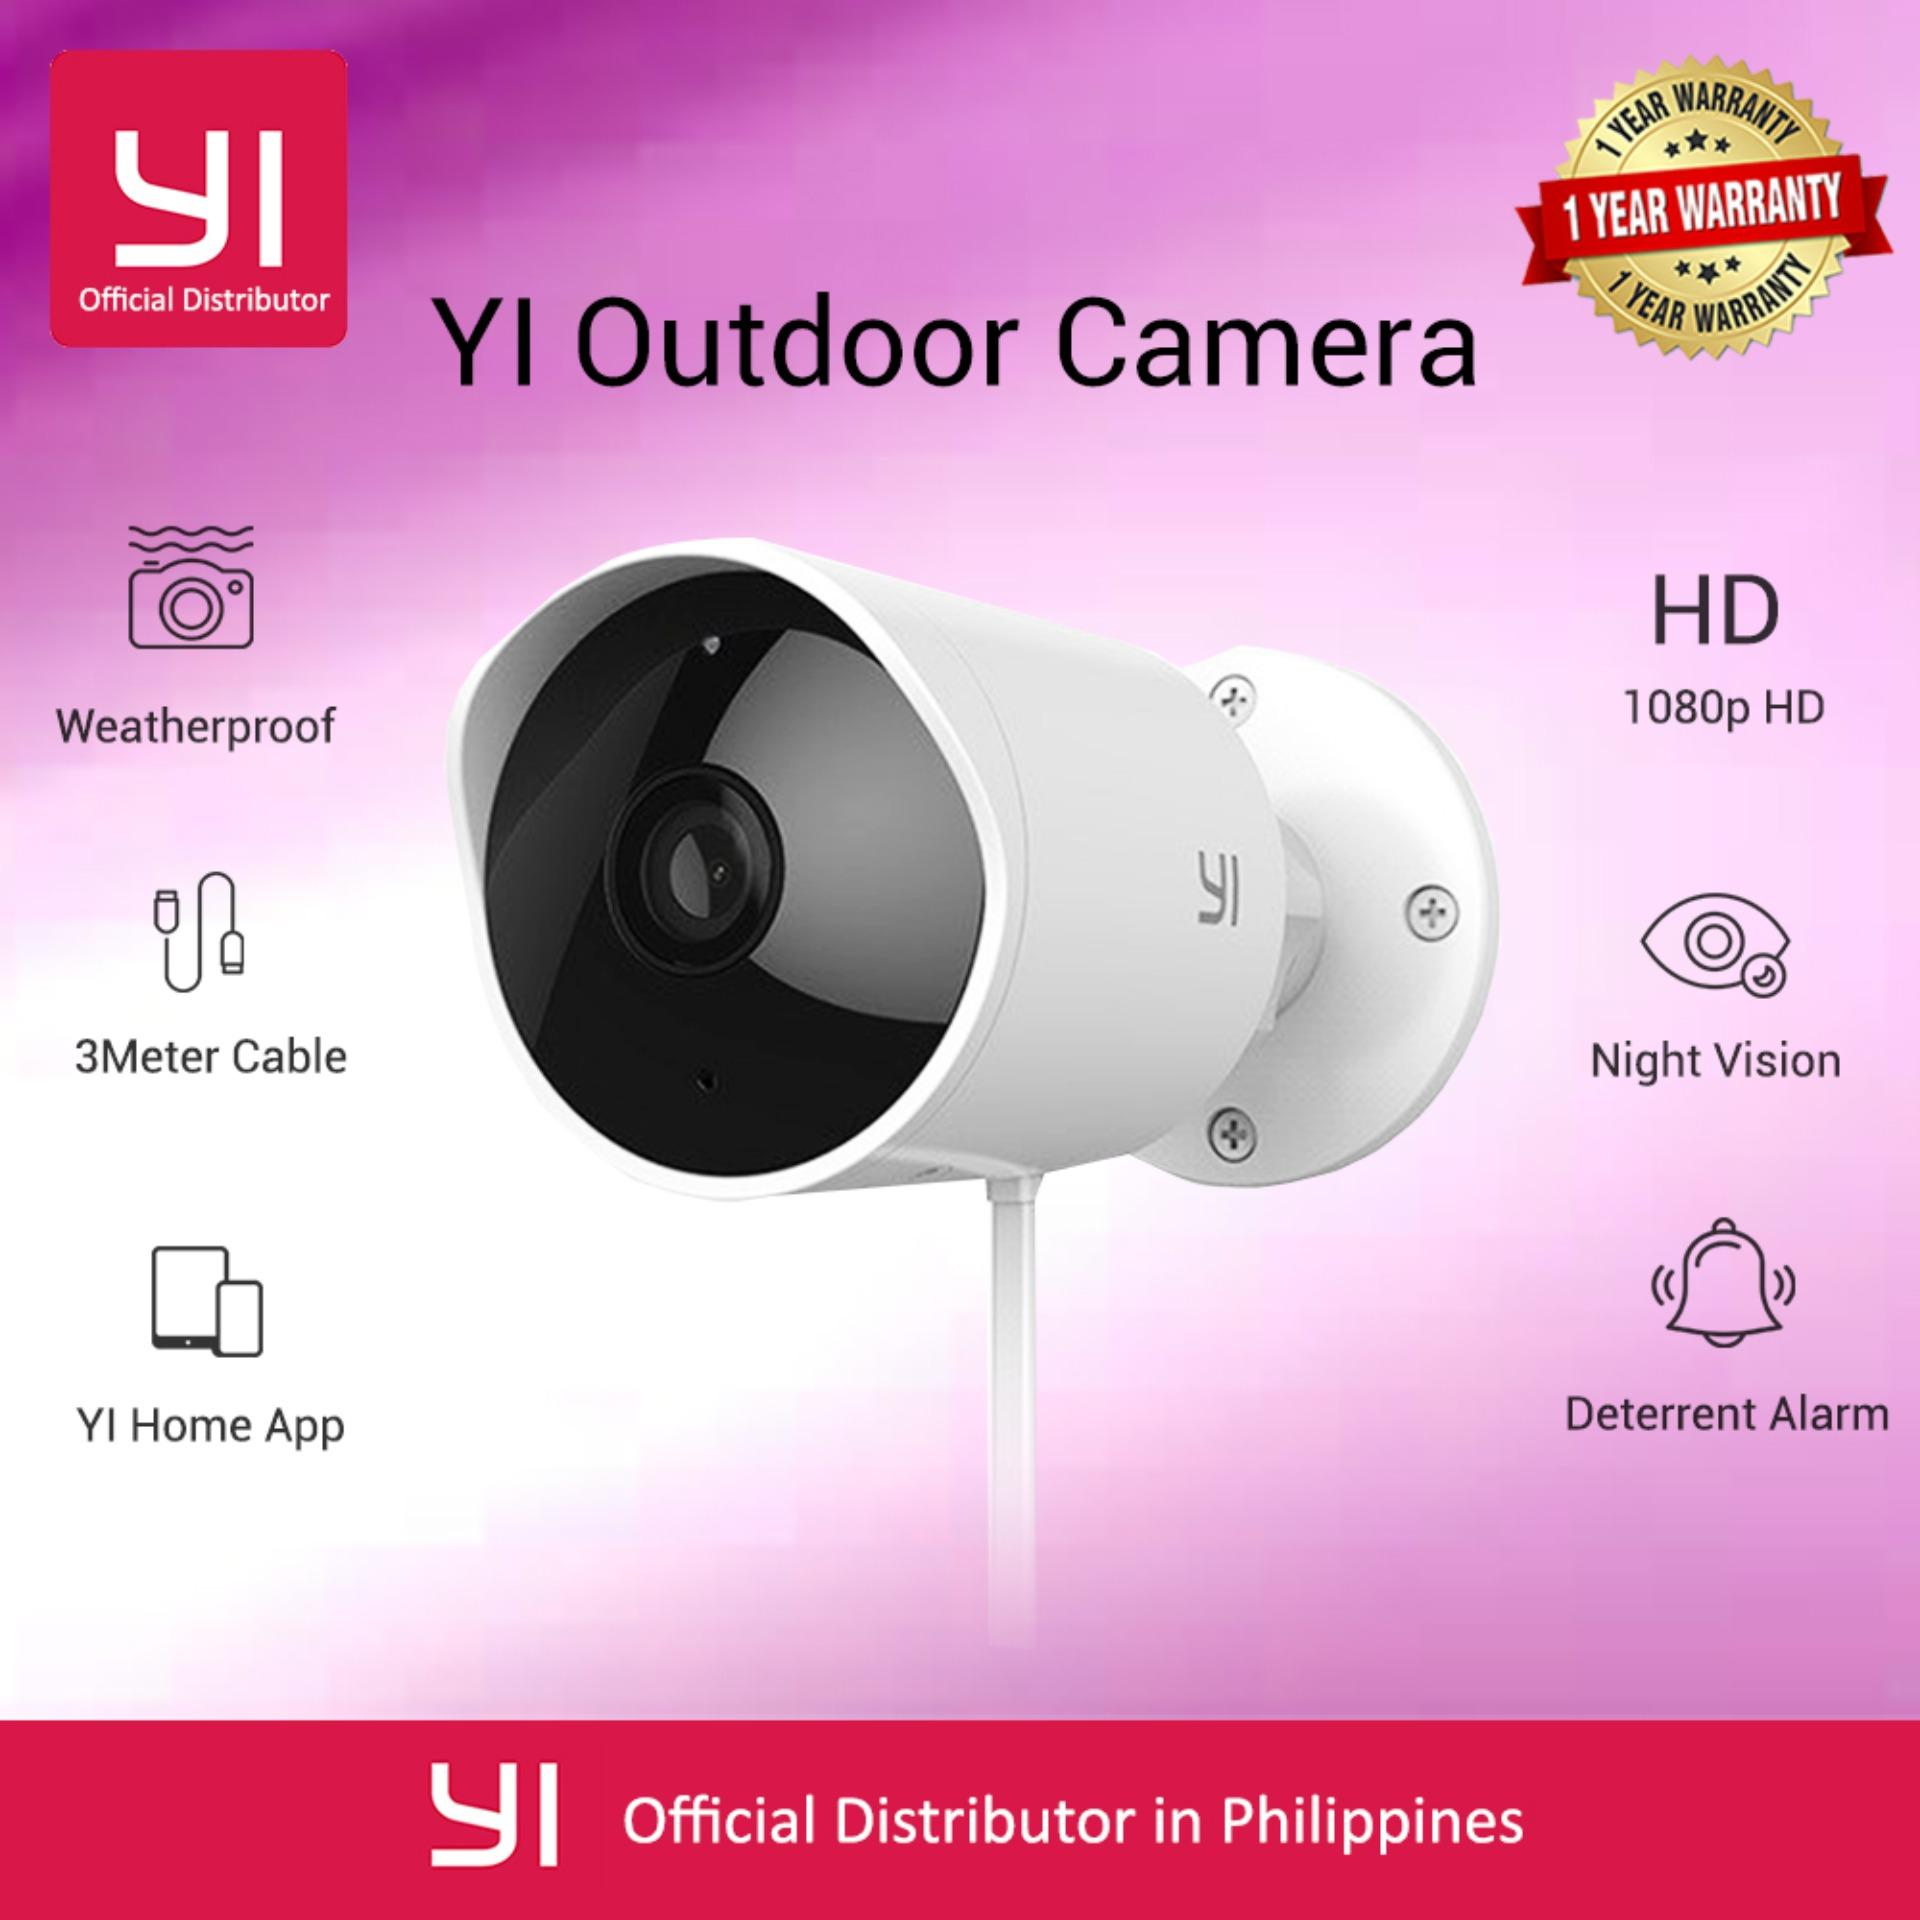 YI Outdoor Security Camera Weatherproof Cloud Cam Wireless IP 1080p resolution Waterproof Night Vision Security Surveillance System International Version